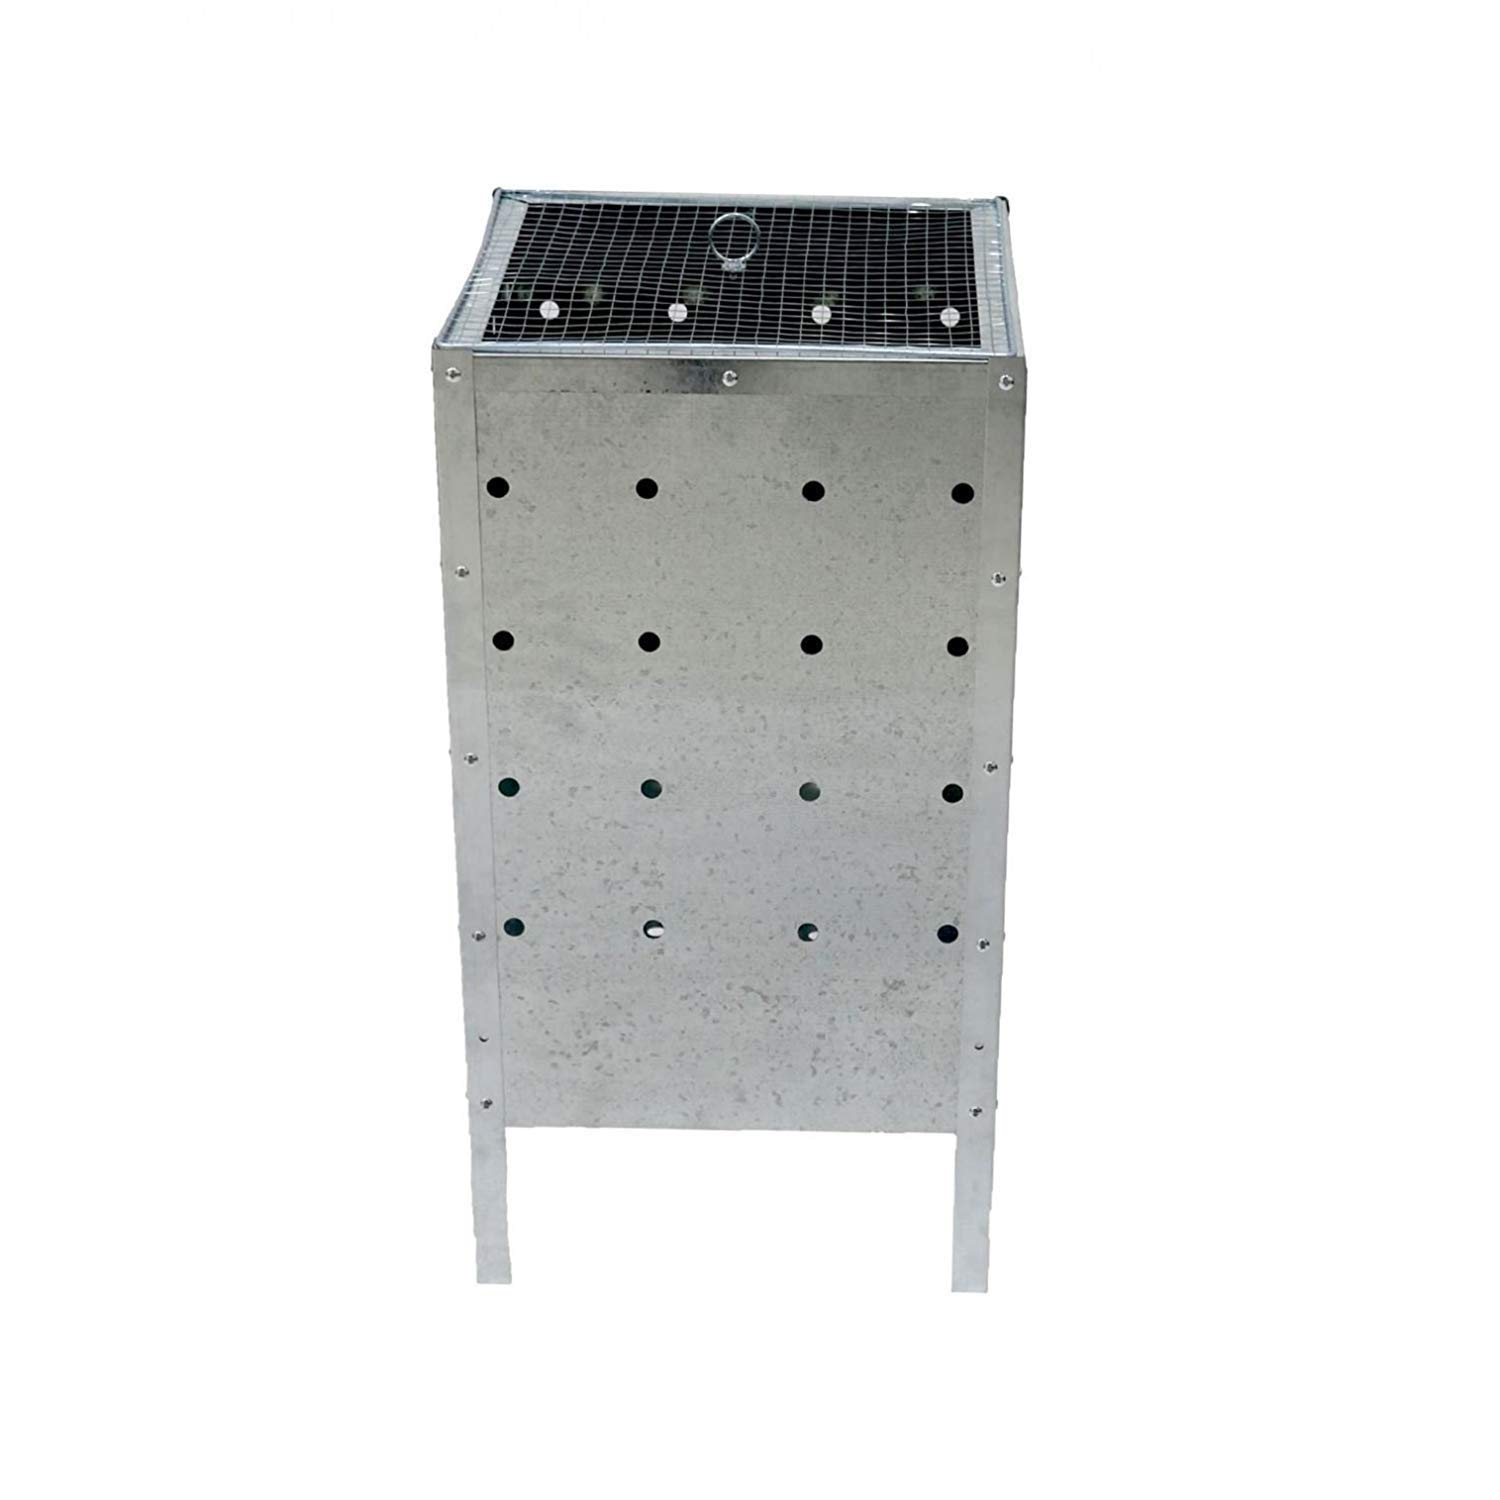 120L 120 Litre Large SQUARE Galvanised Metal Incinerator W x 40cm x 90cm Set of 4 - Quick /& Easy Assembly 40cm H L